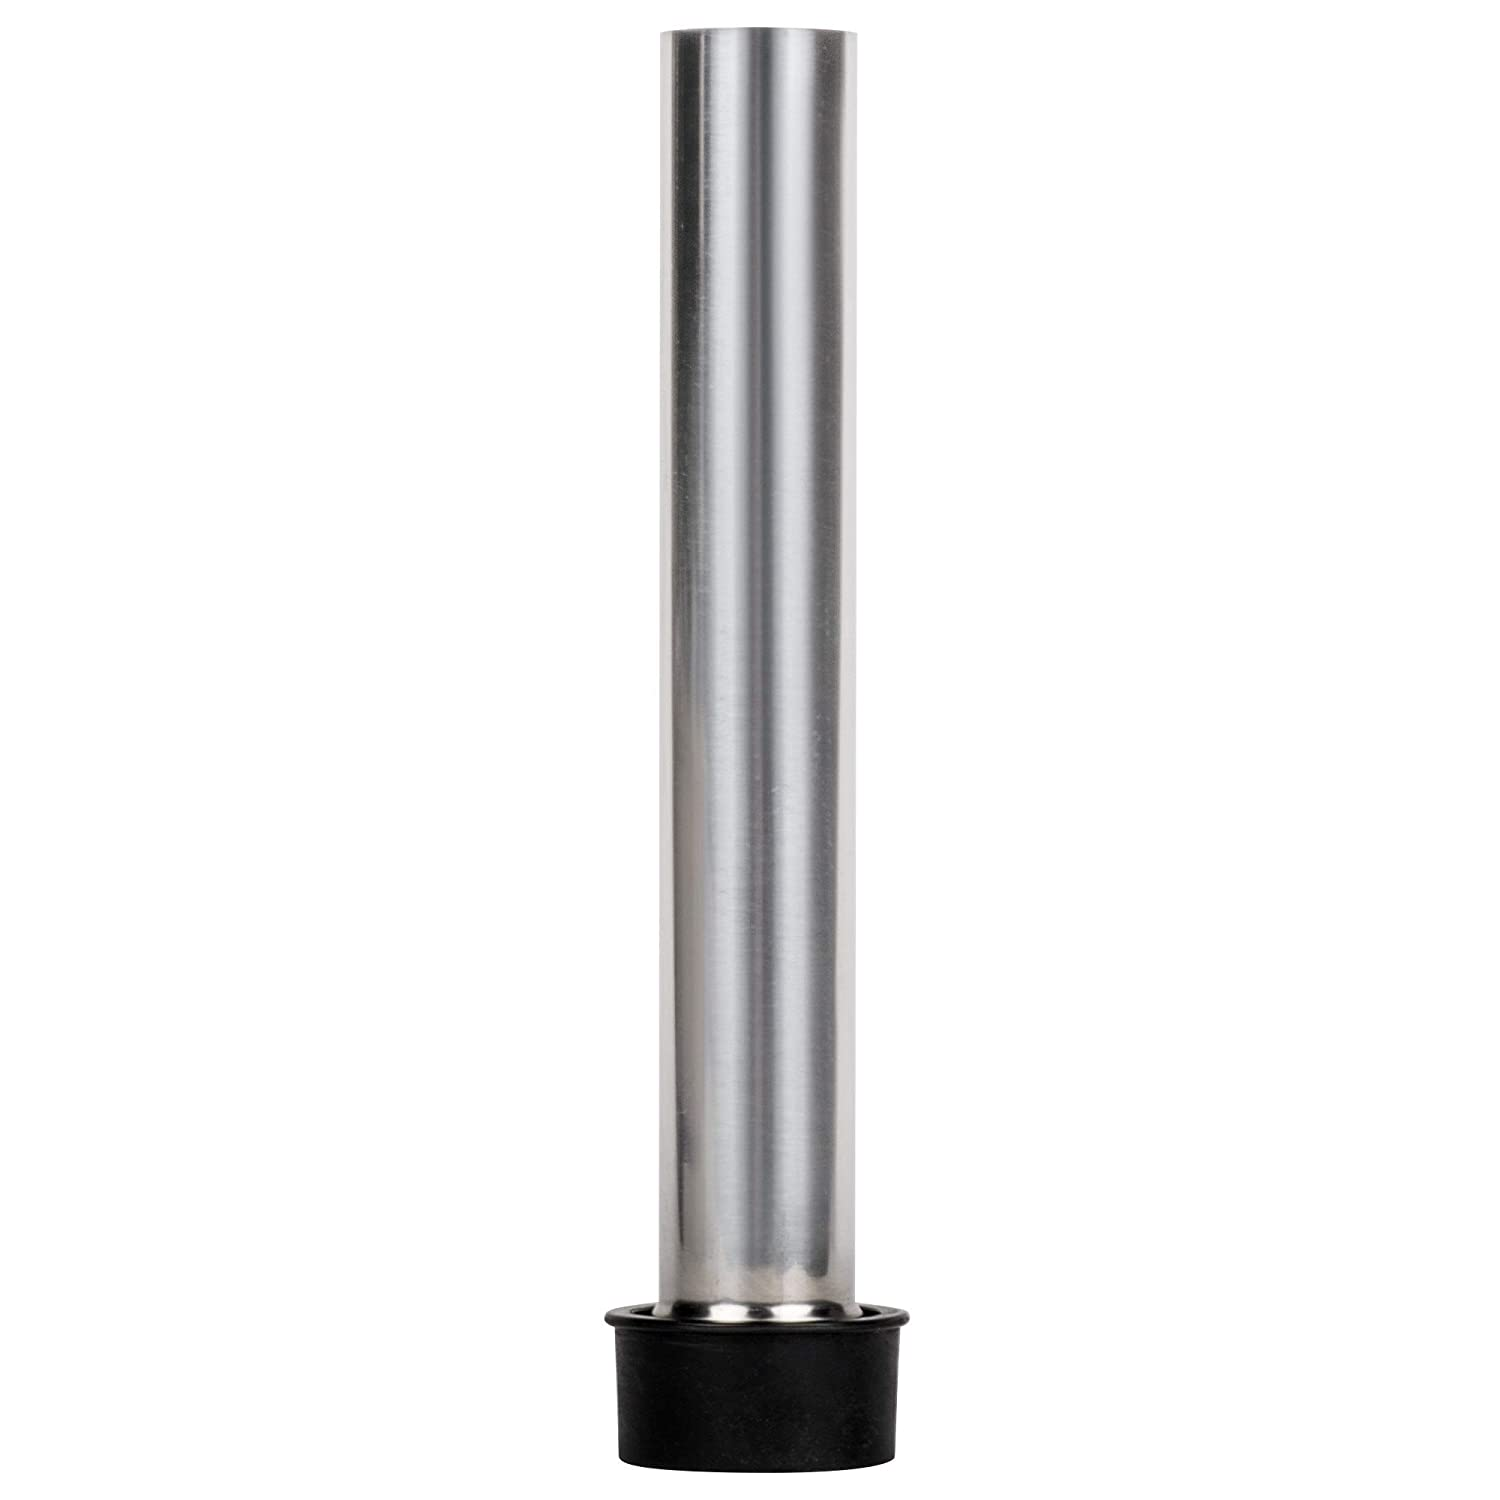 Regency Stainless Steel Metal Bar Sink Overflow Pipe 8 Inches High for 1-1//2 Drain Hole